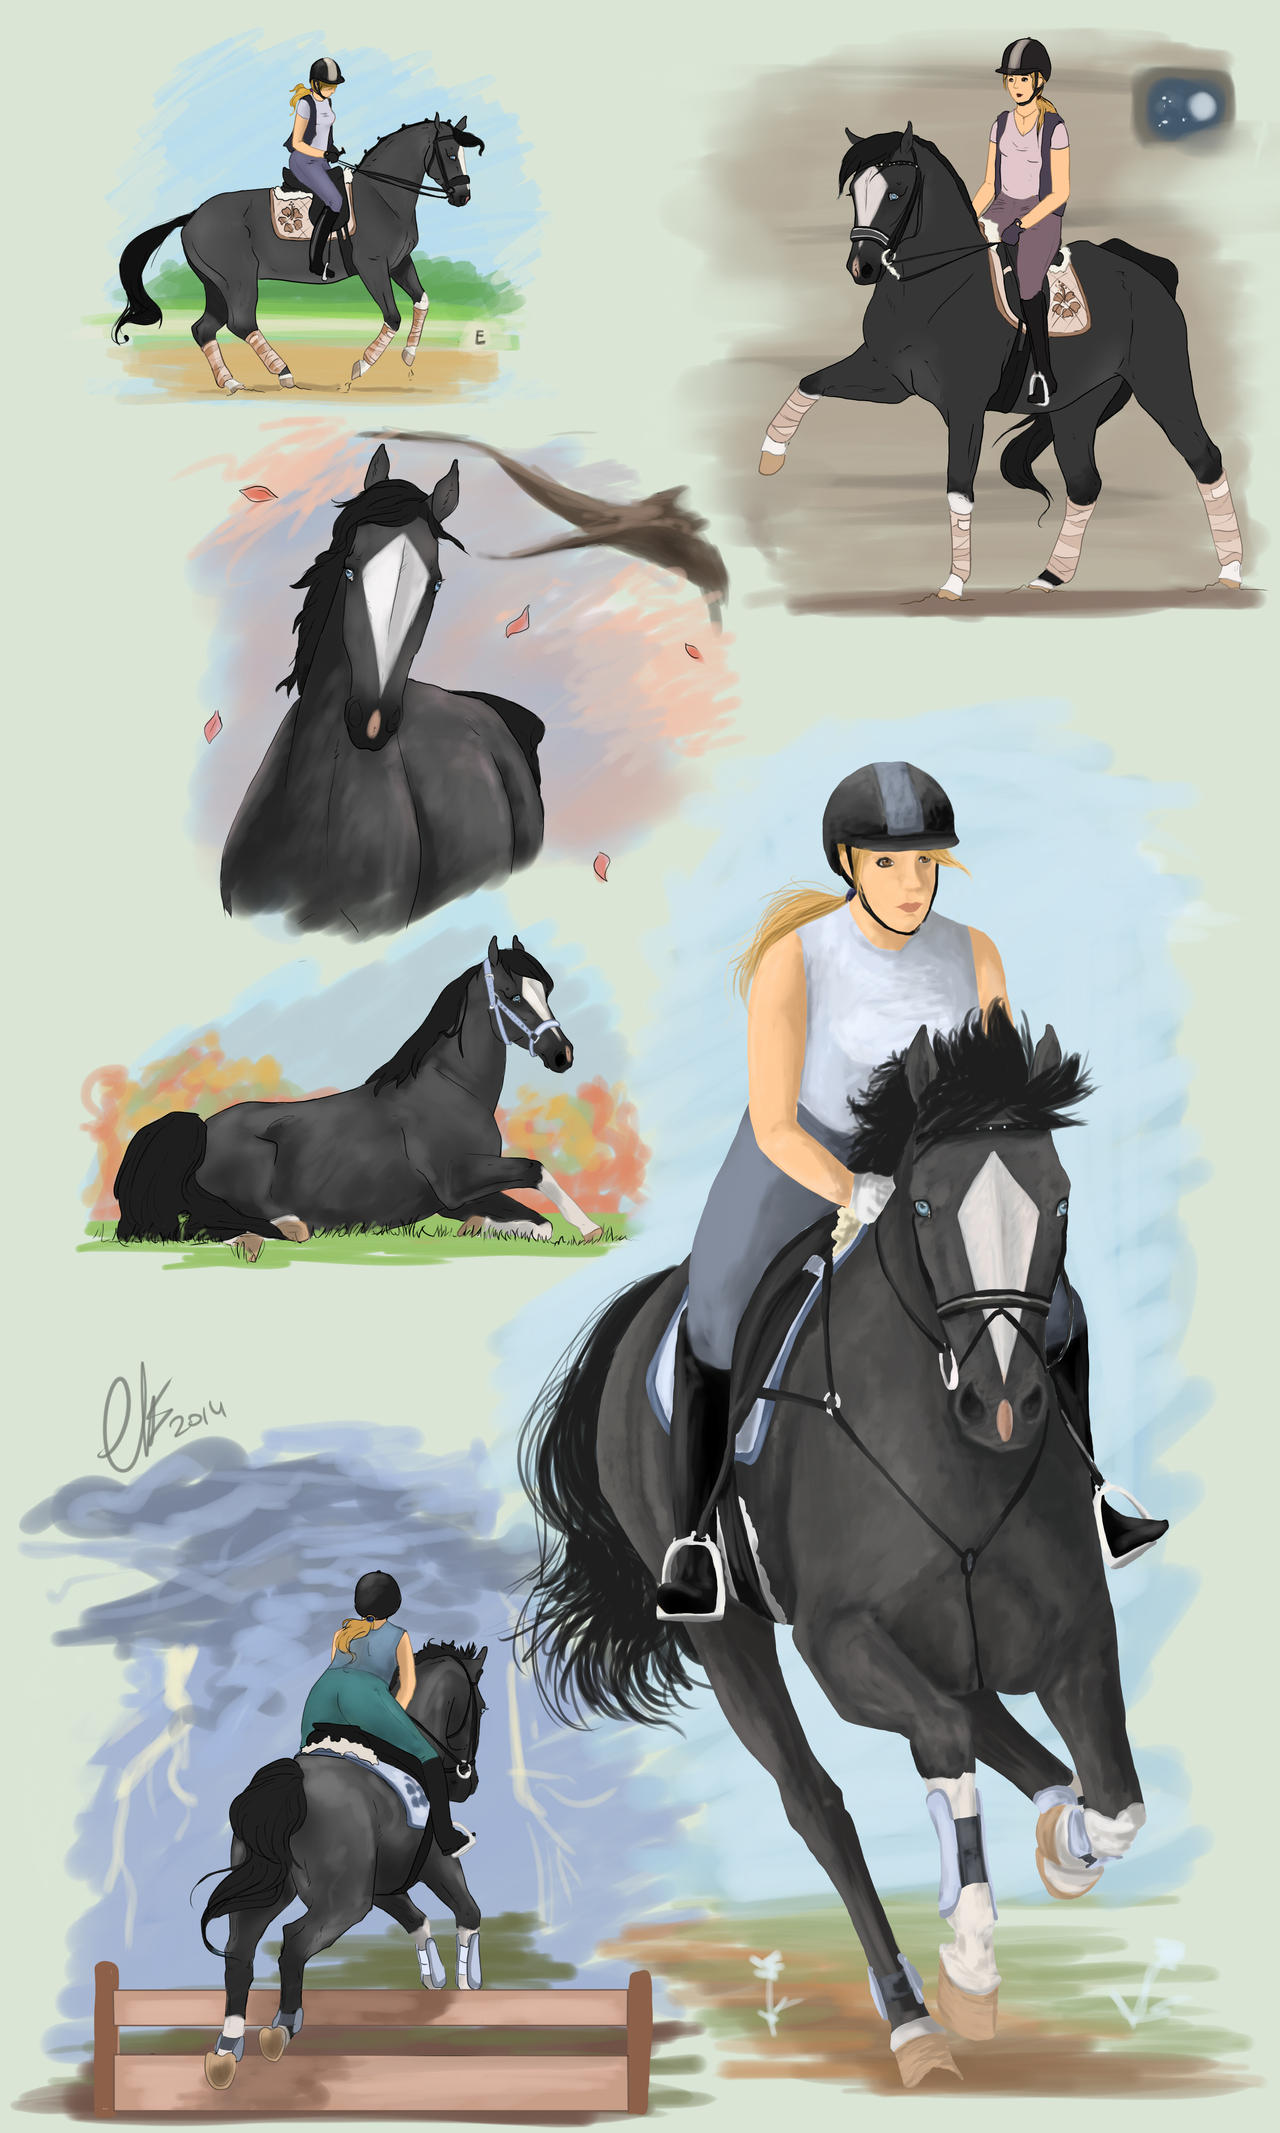 BMS Gawaii - Dressage and SJ Training by LeeyaKuchuk